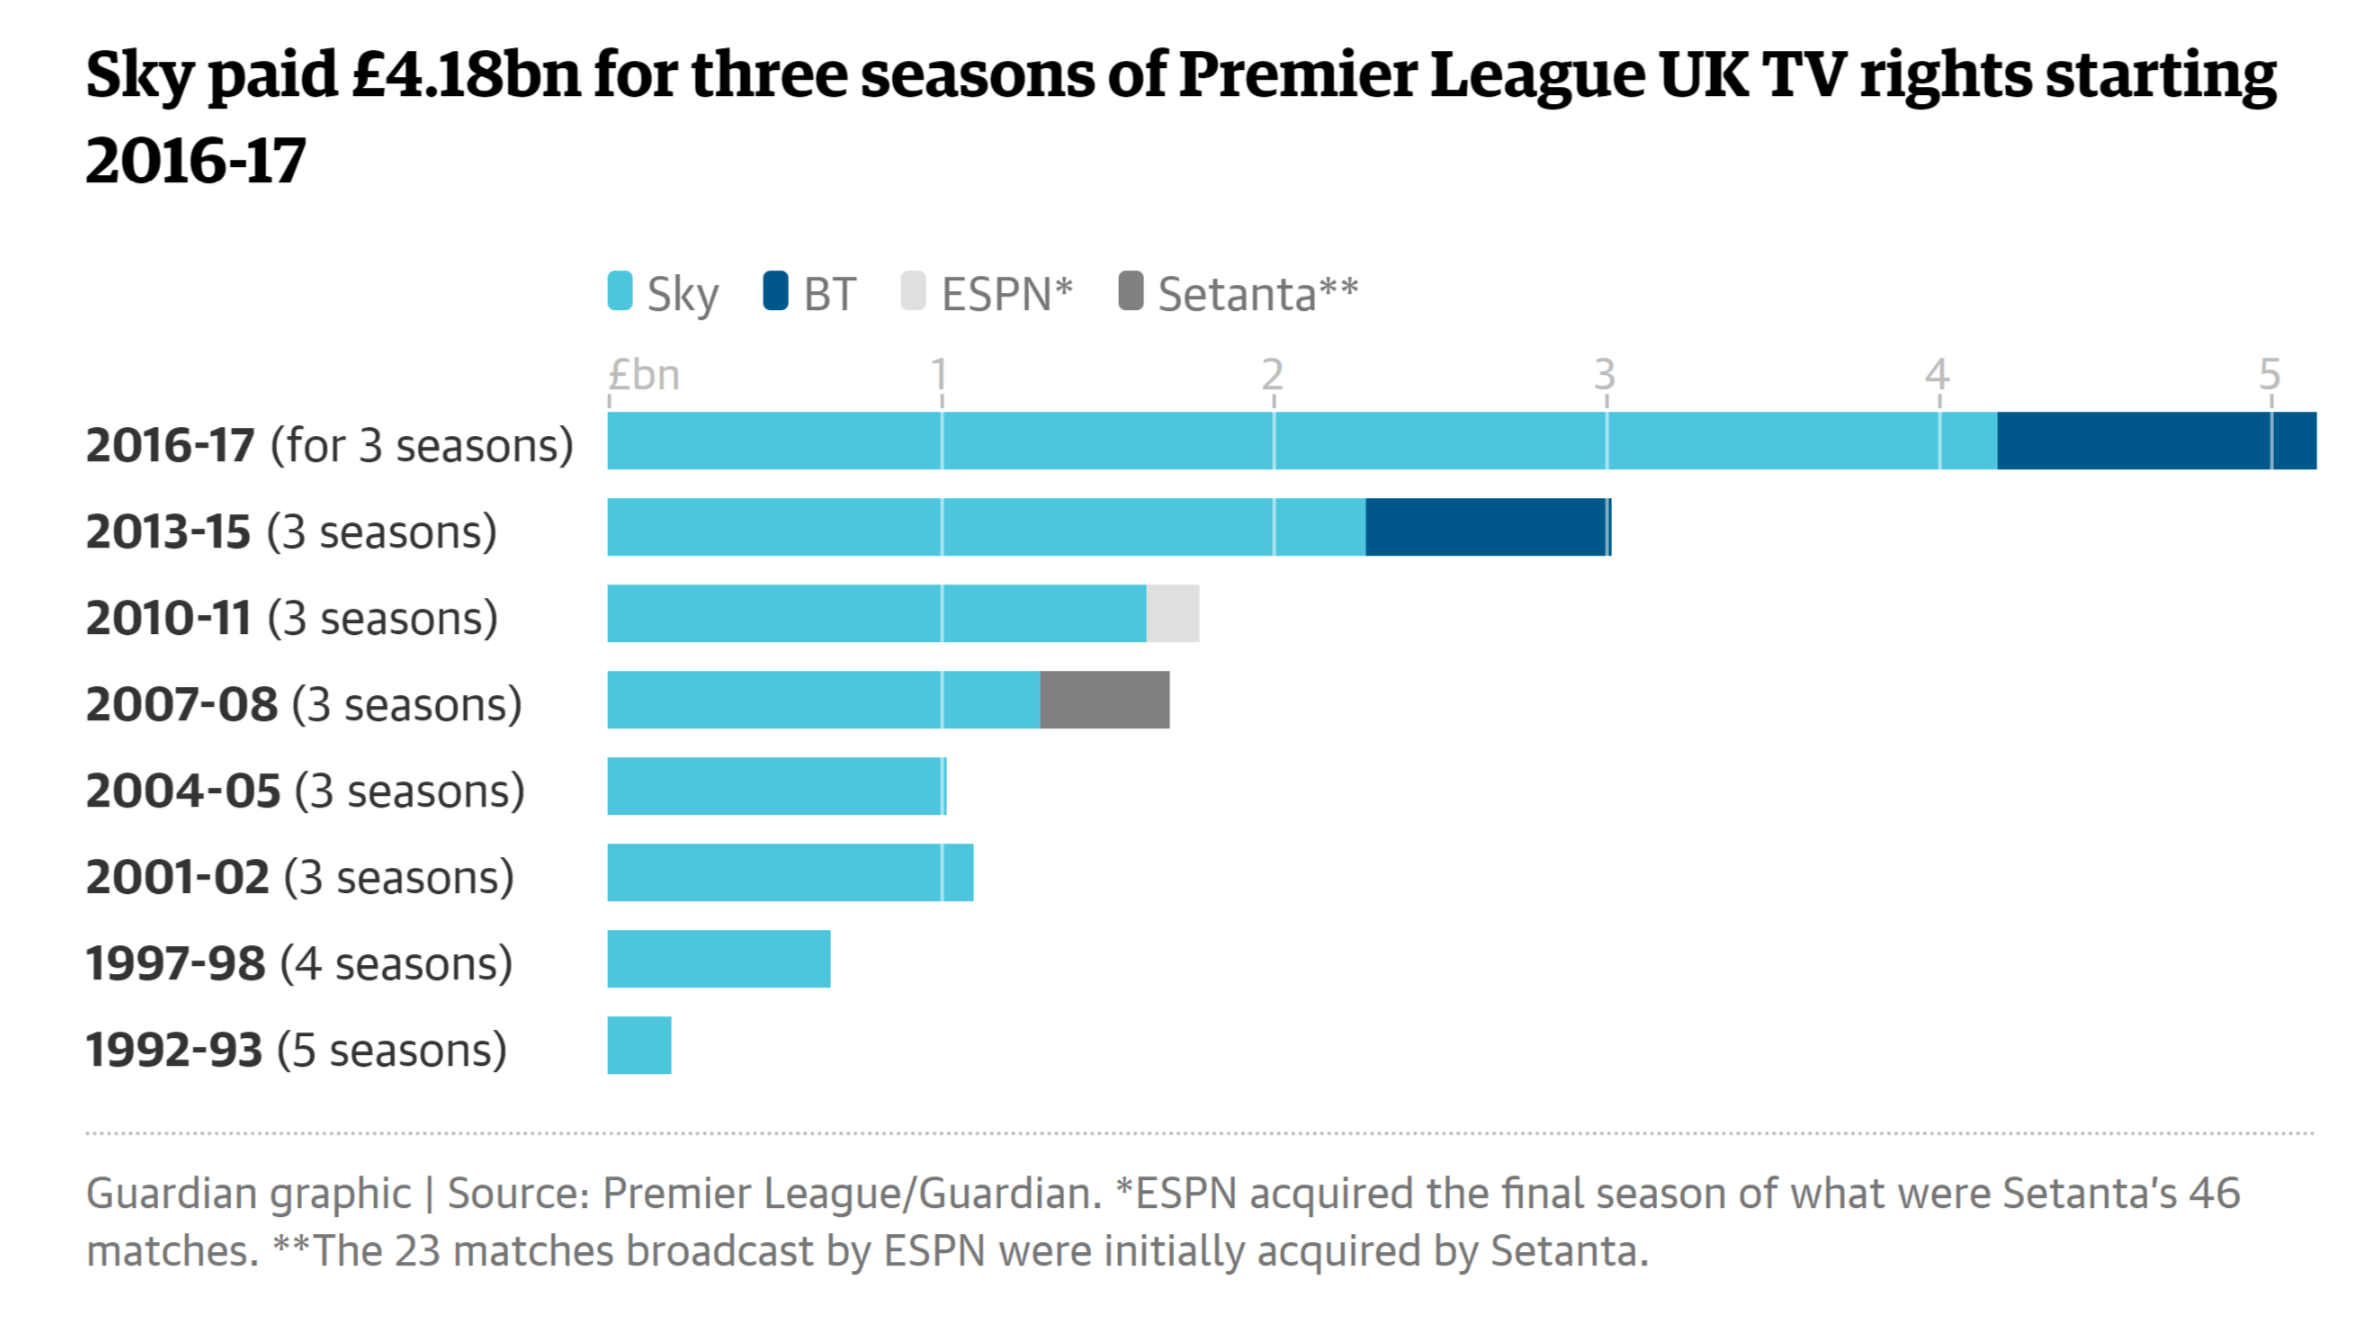 Price of EPL UK TV rights